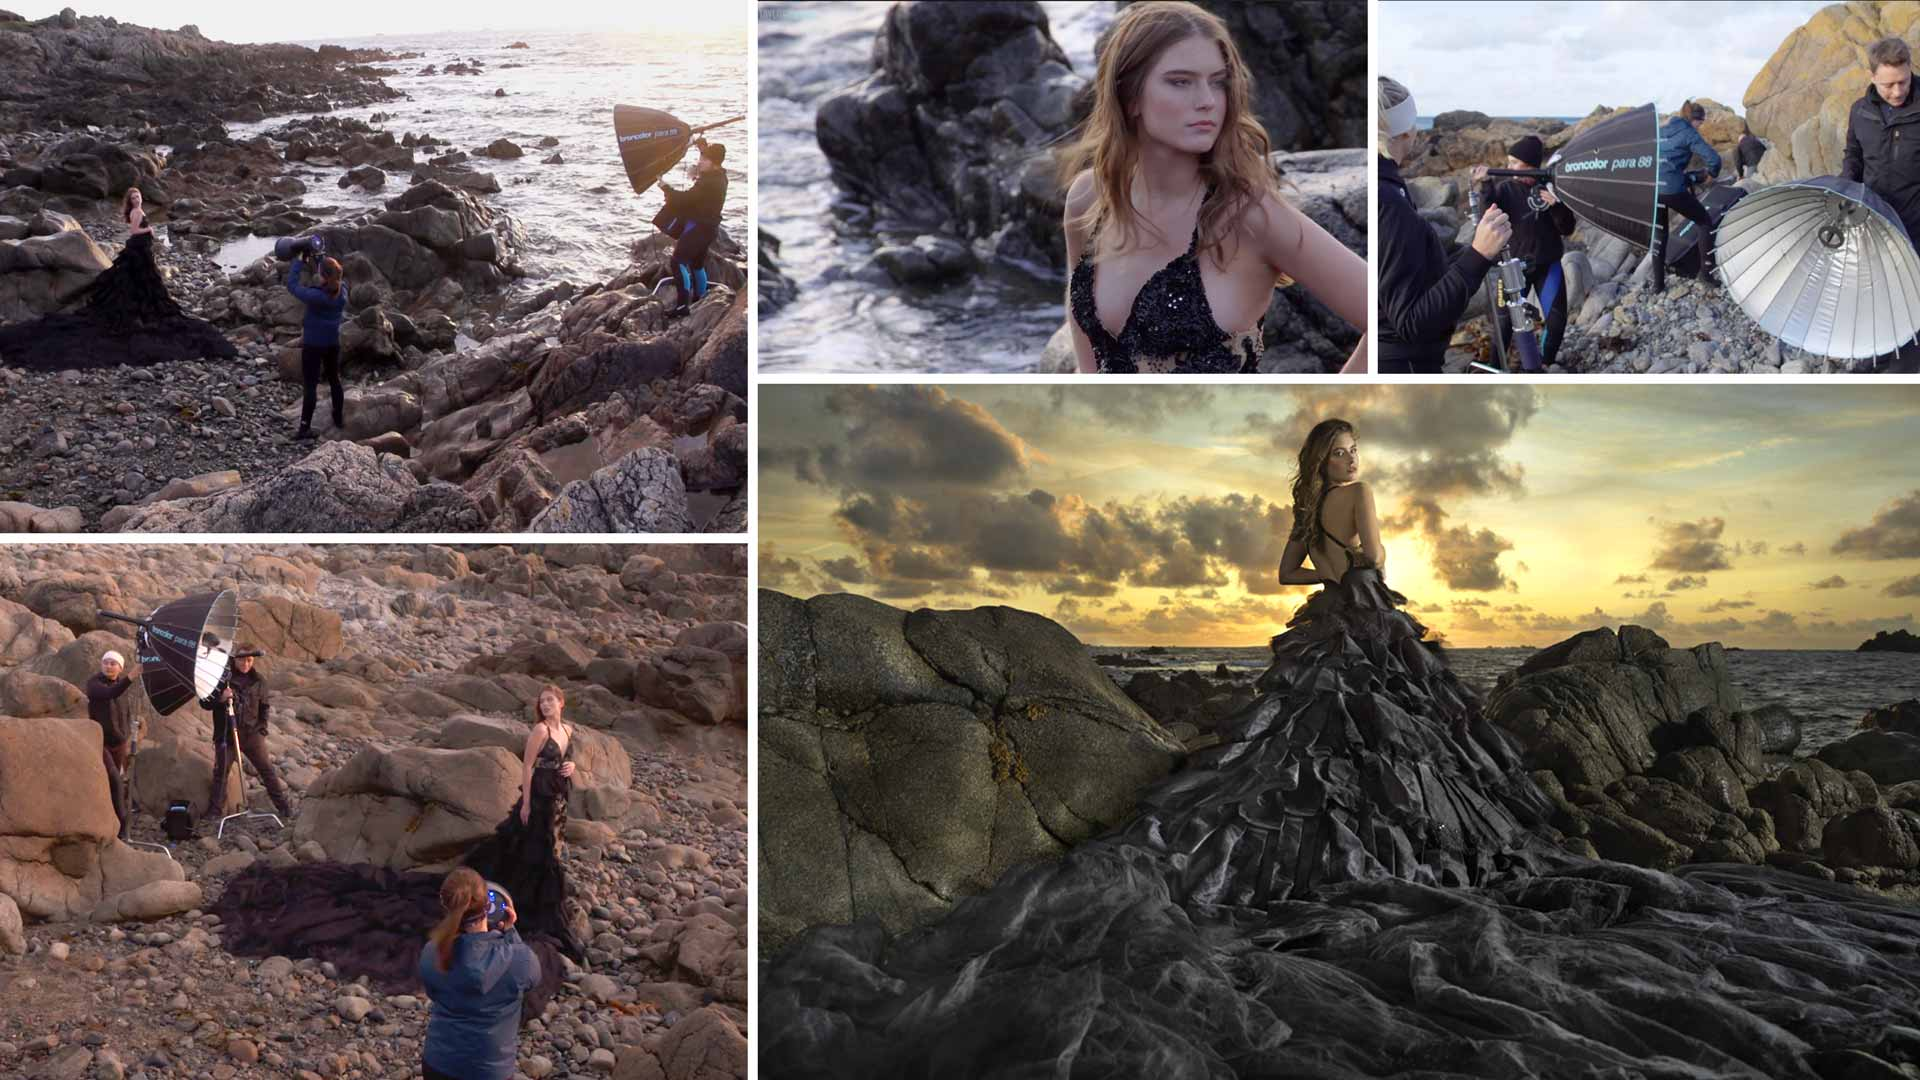 Photographing fashion on the coast with flash lighting